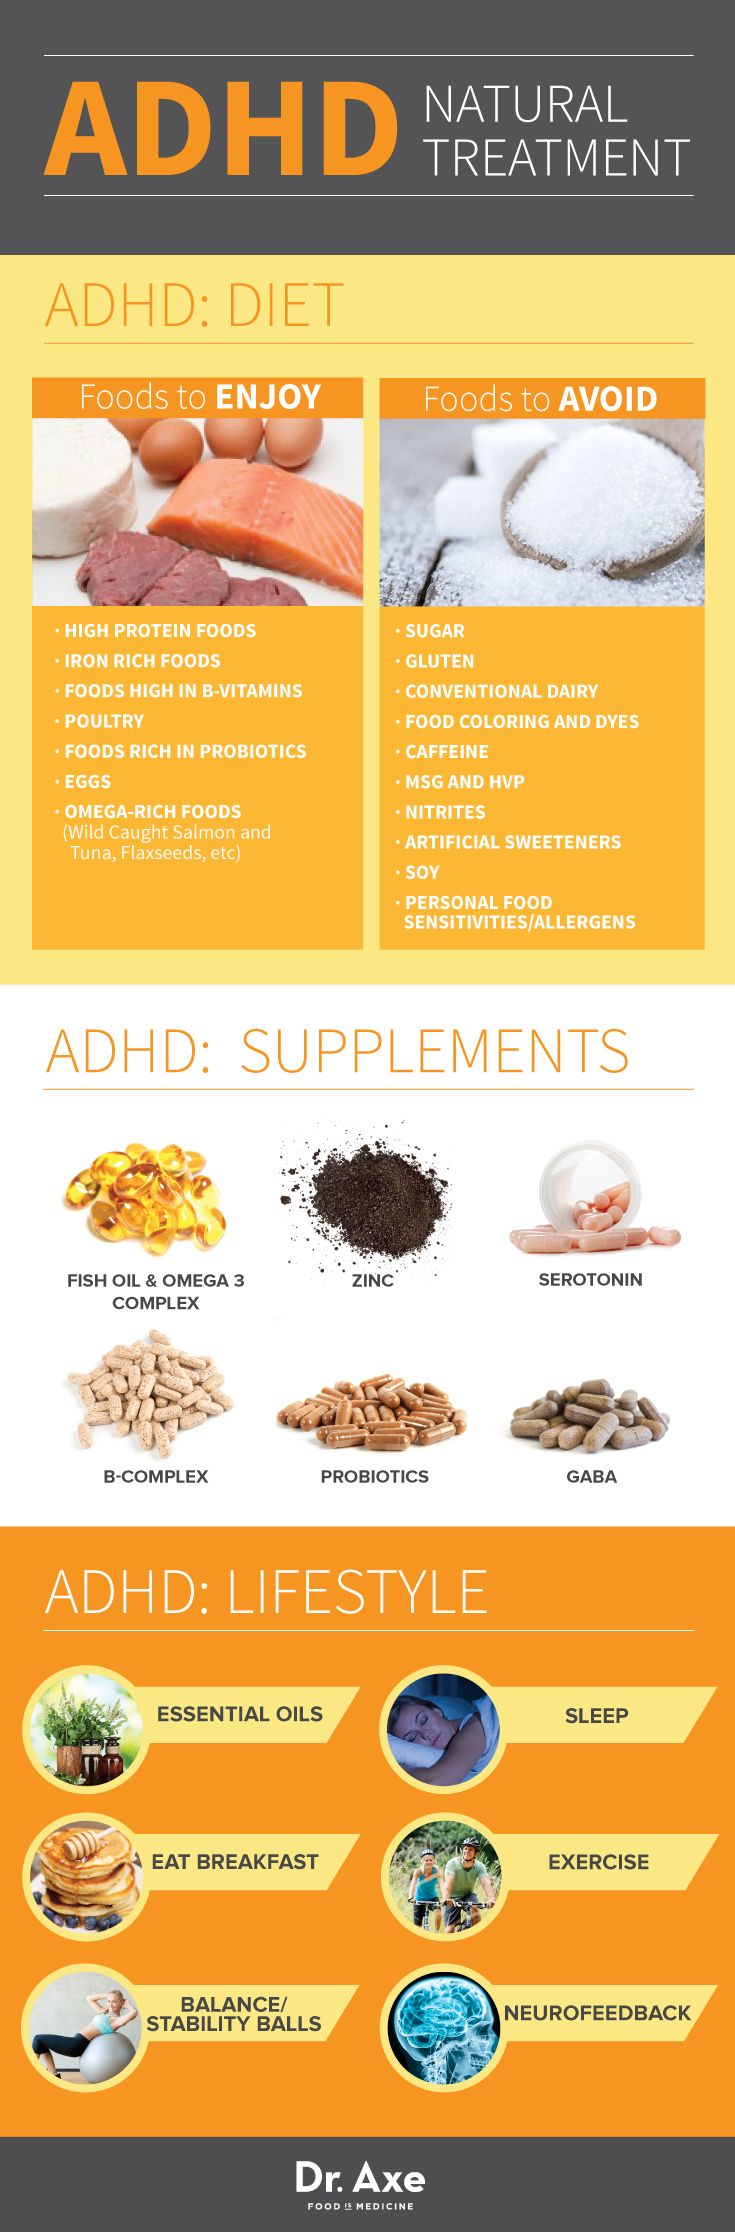 The ADHD Diet Plan From Our Family Eats. A Simple, Mom Proven Method To  Improve Your Childu0027s Behavior. | Diet Tips | Pinterest | Adhd Diet, ...